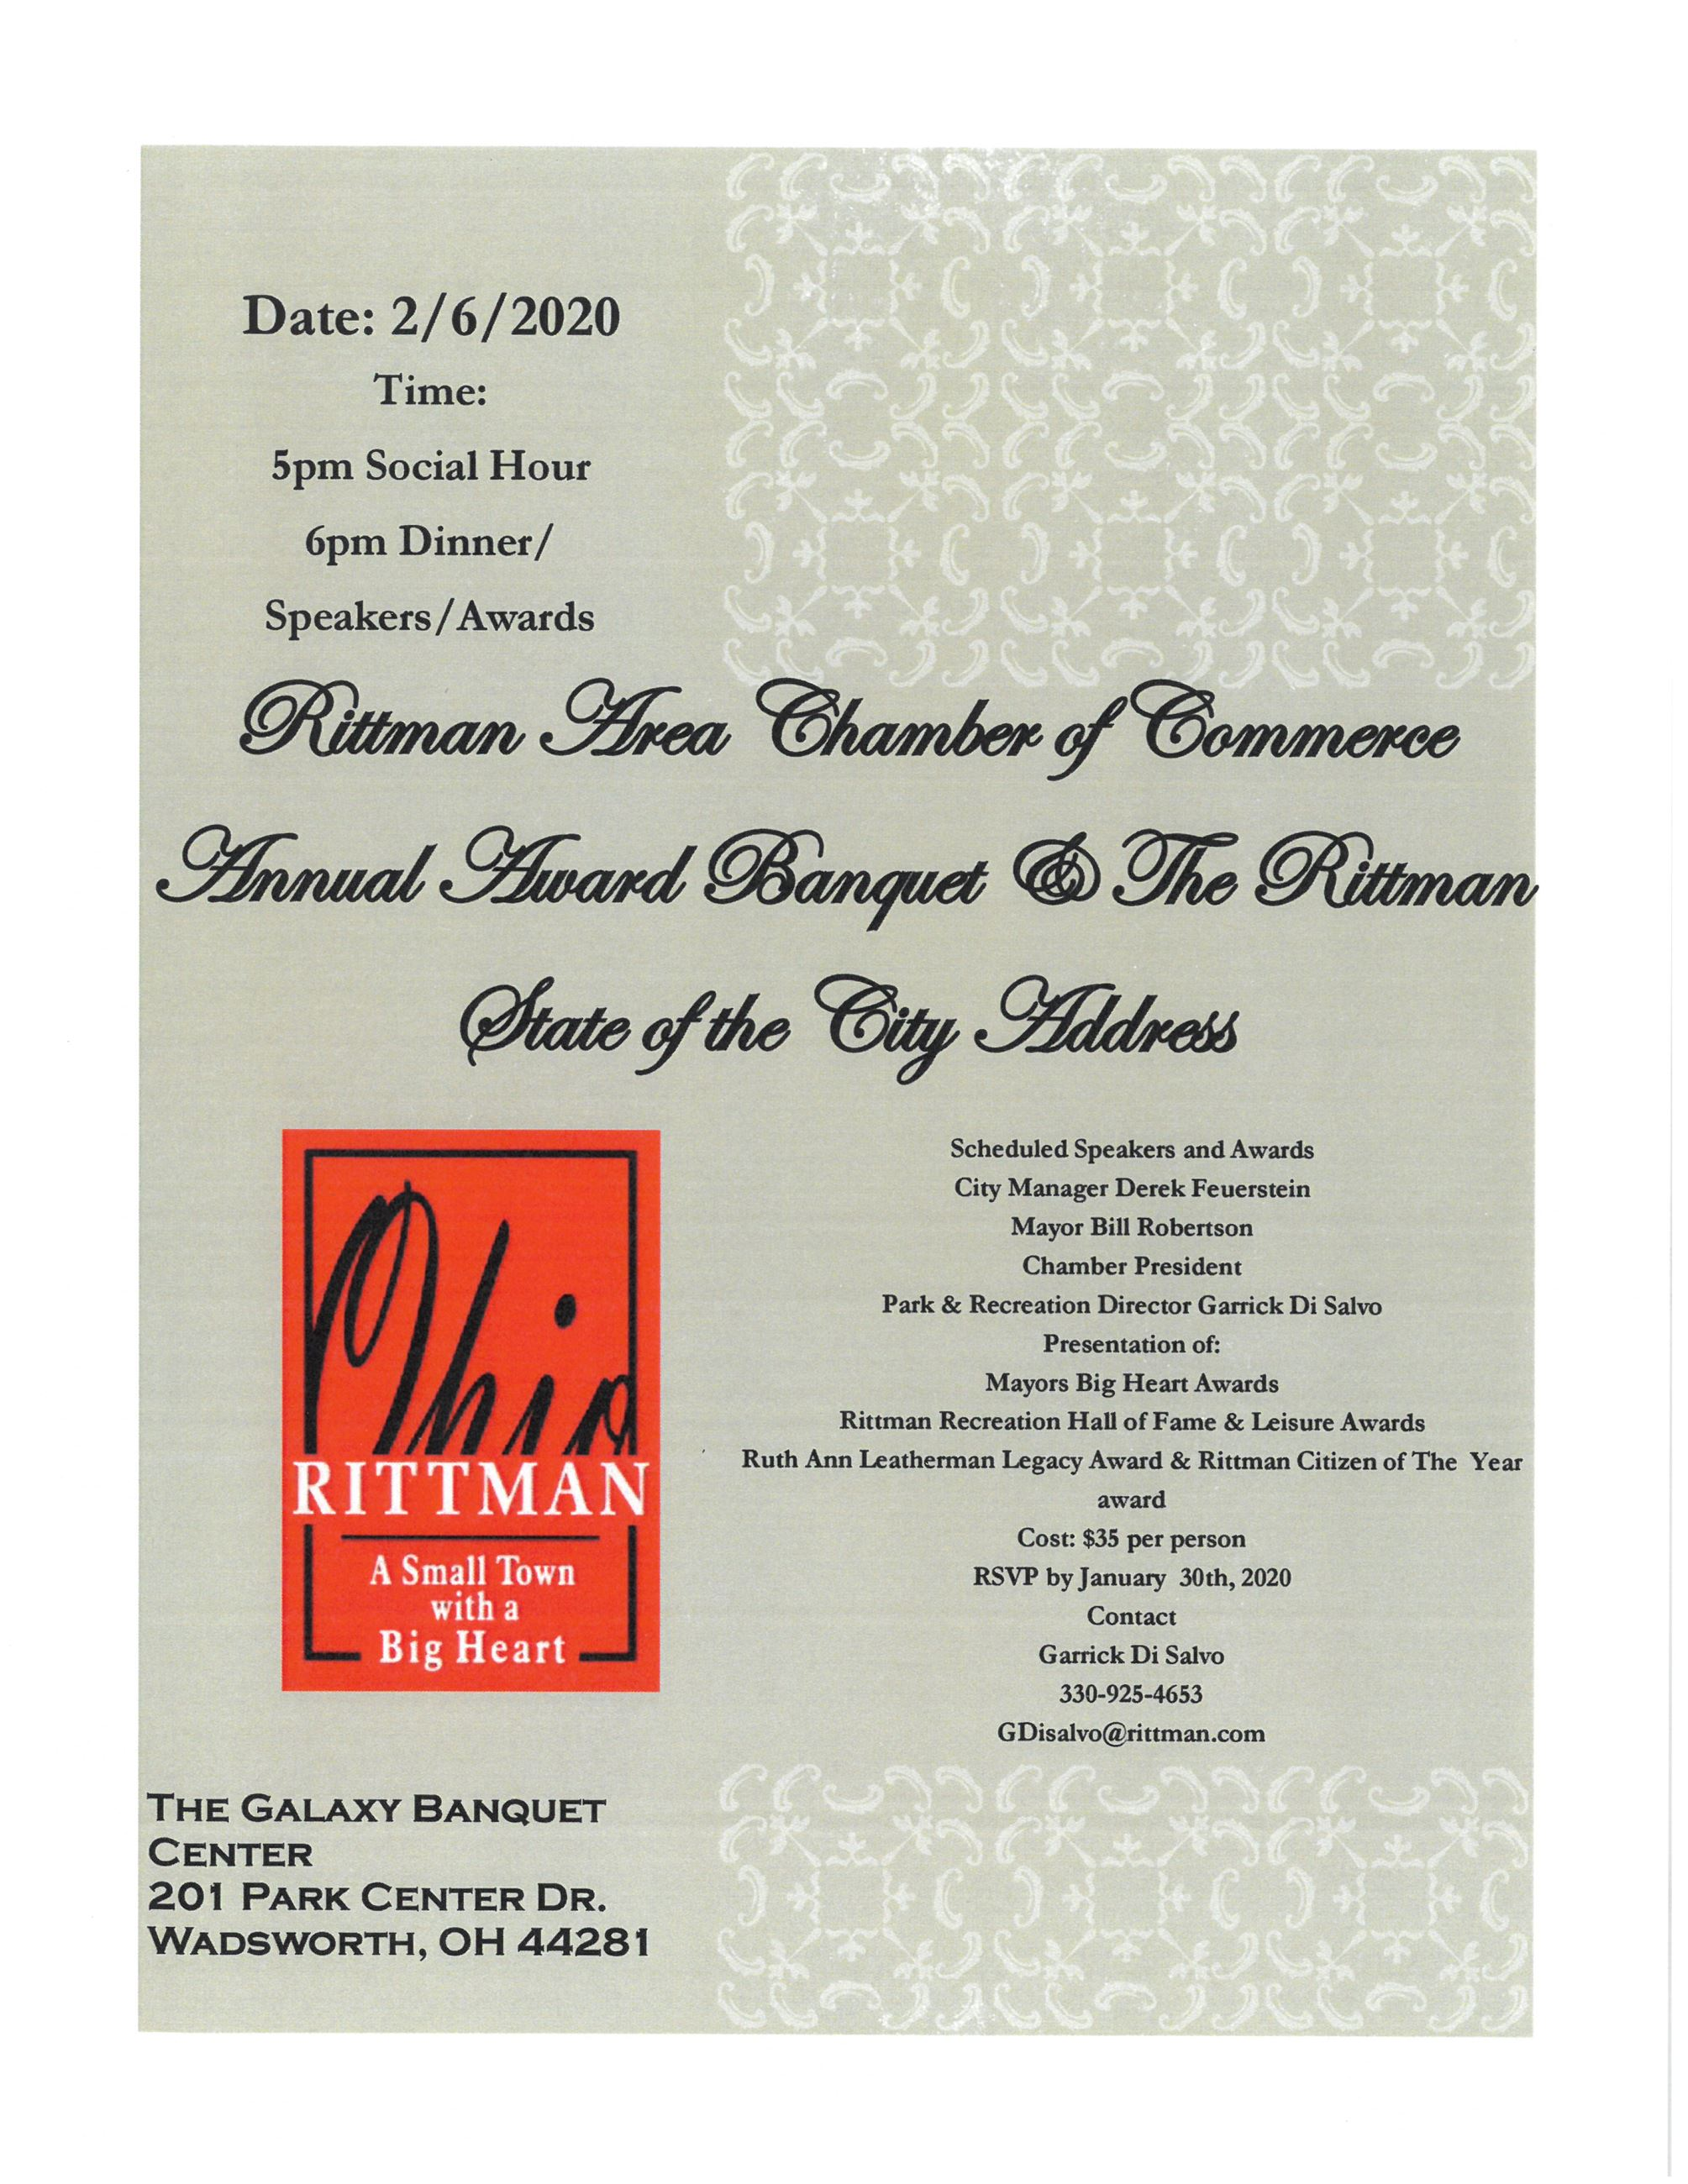 Flyer of 2020 Rittman Chamber Annual Award and State of City Address